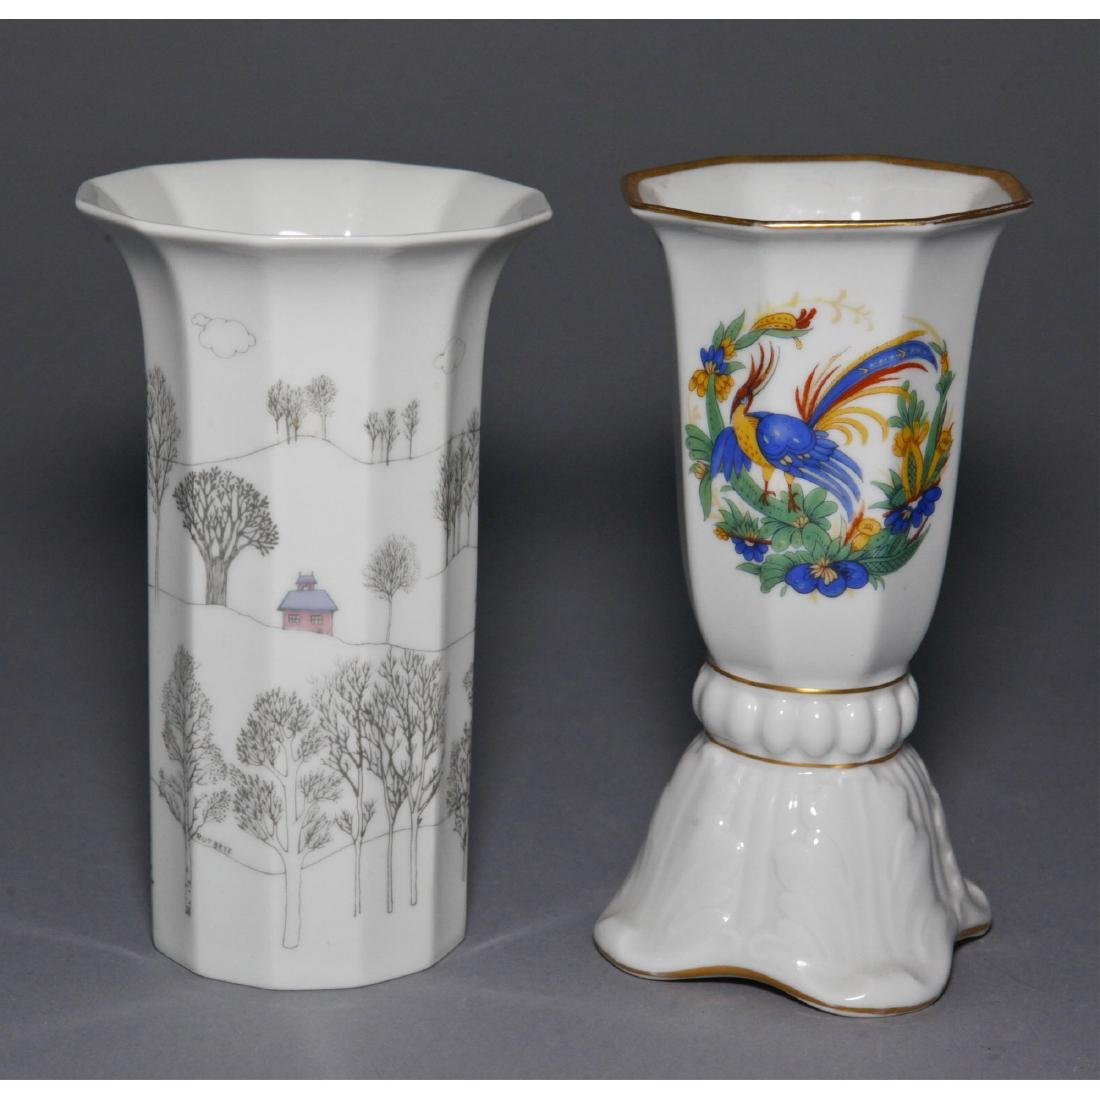 GROUP OF 3 ROSENTHAL PORCELAIN VASES & BOWL - 5